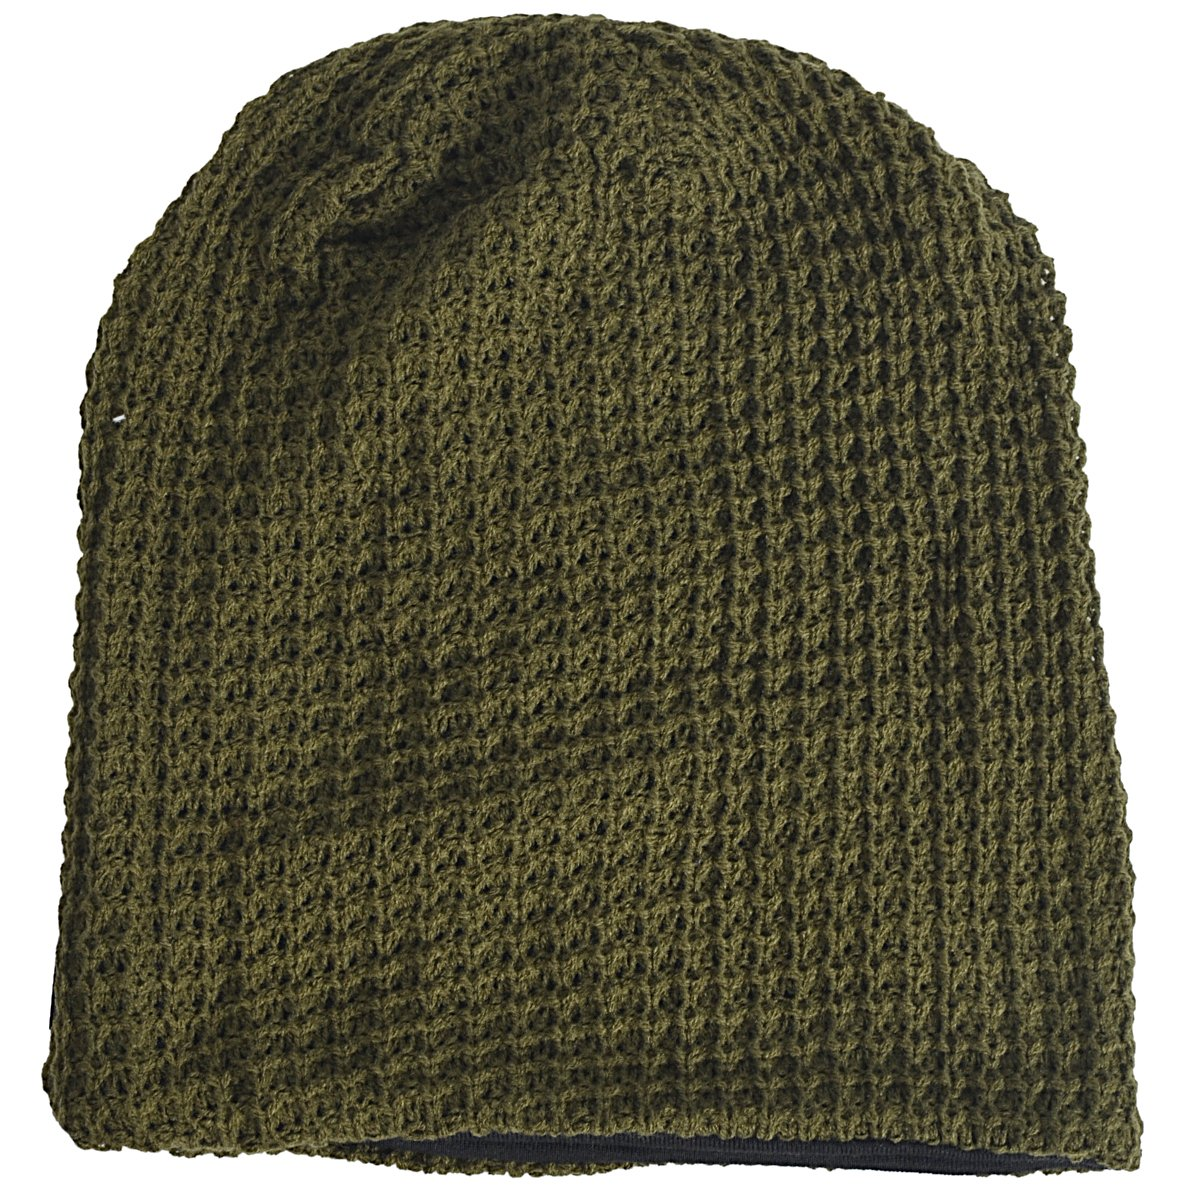 8f490632dd3 FORBUSITE Mens Slouchy Long Beanie Knit Cap for Summer Winter ...